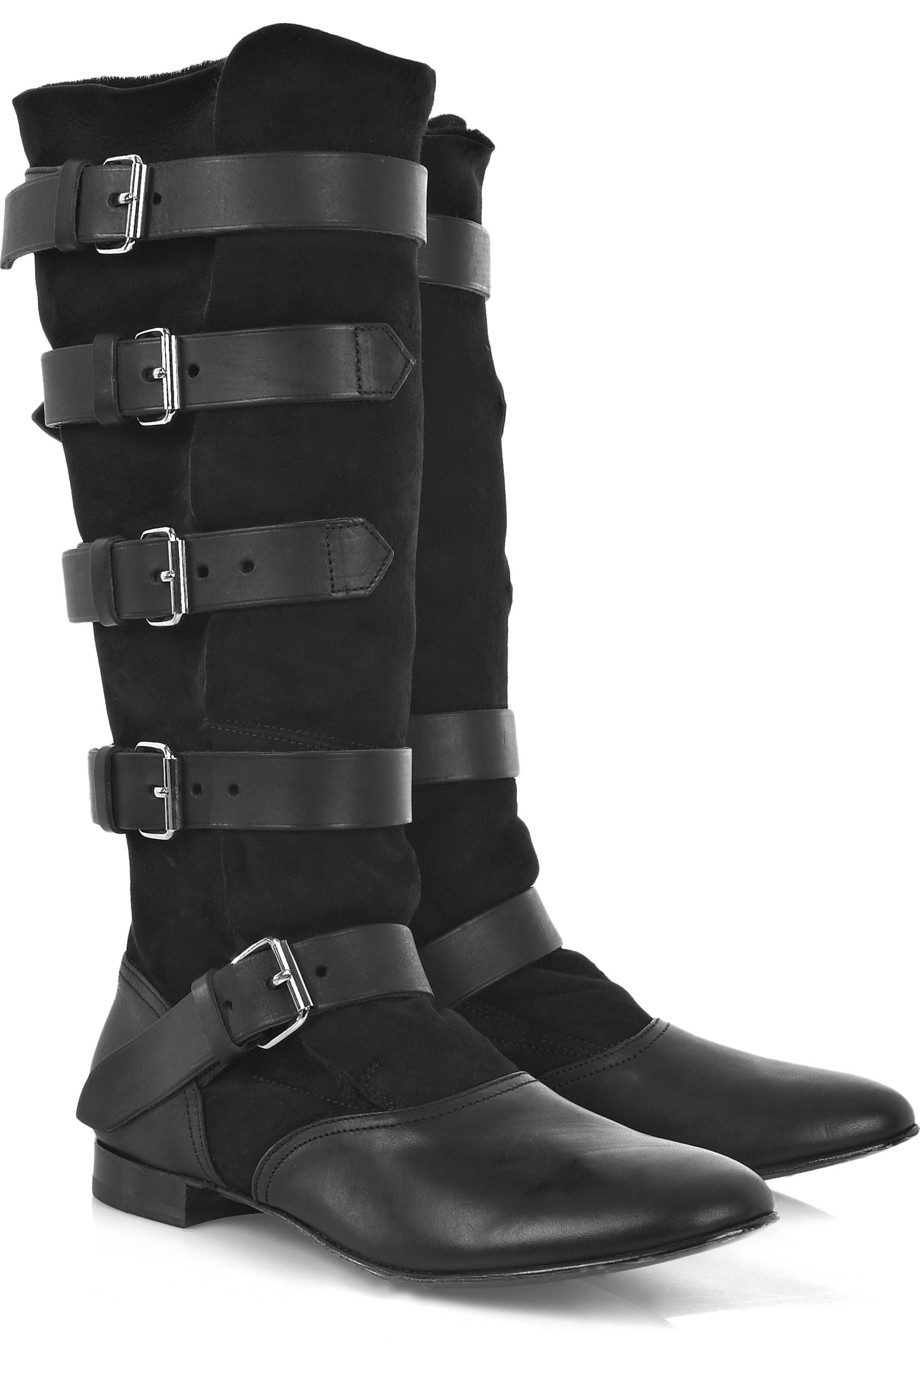 Vivienne Westwood Shearling Lined Pirate Boots In Black Lyst